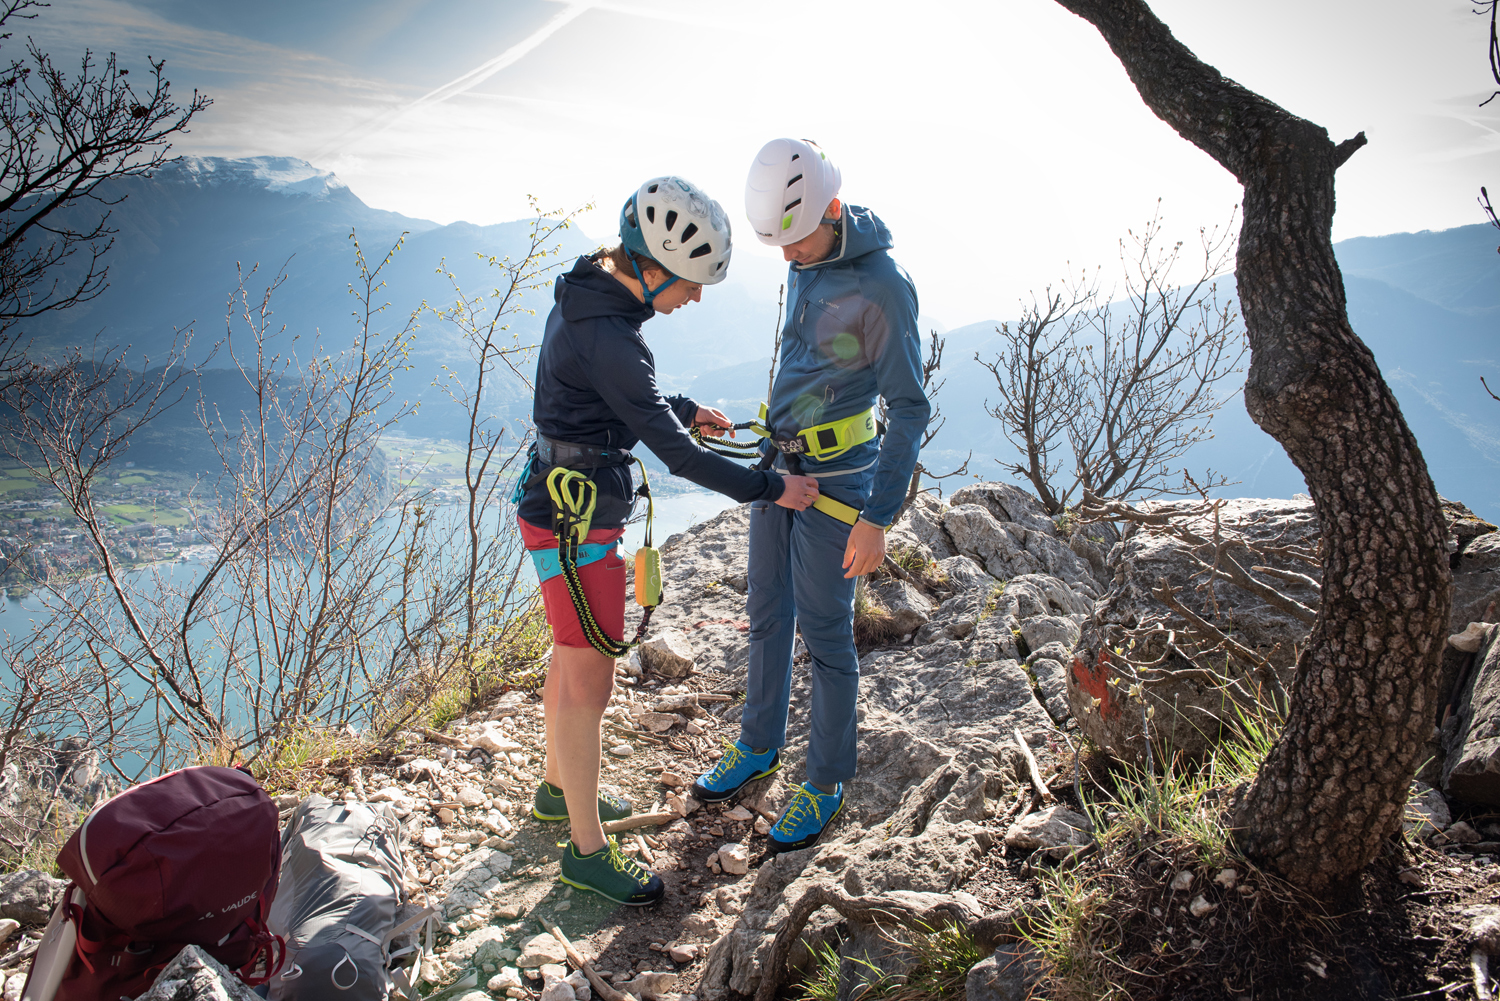 Edelrid Klettergurt Kind : Gear of the week edelrid orion klettergurt bergfreunde